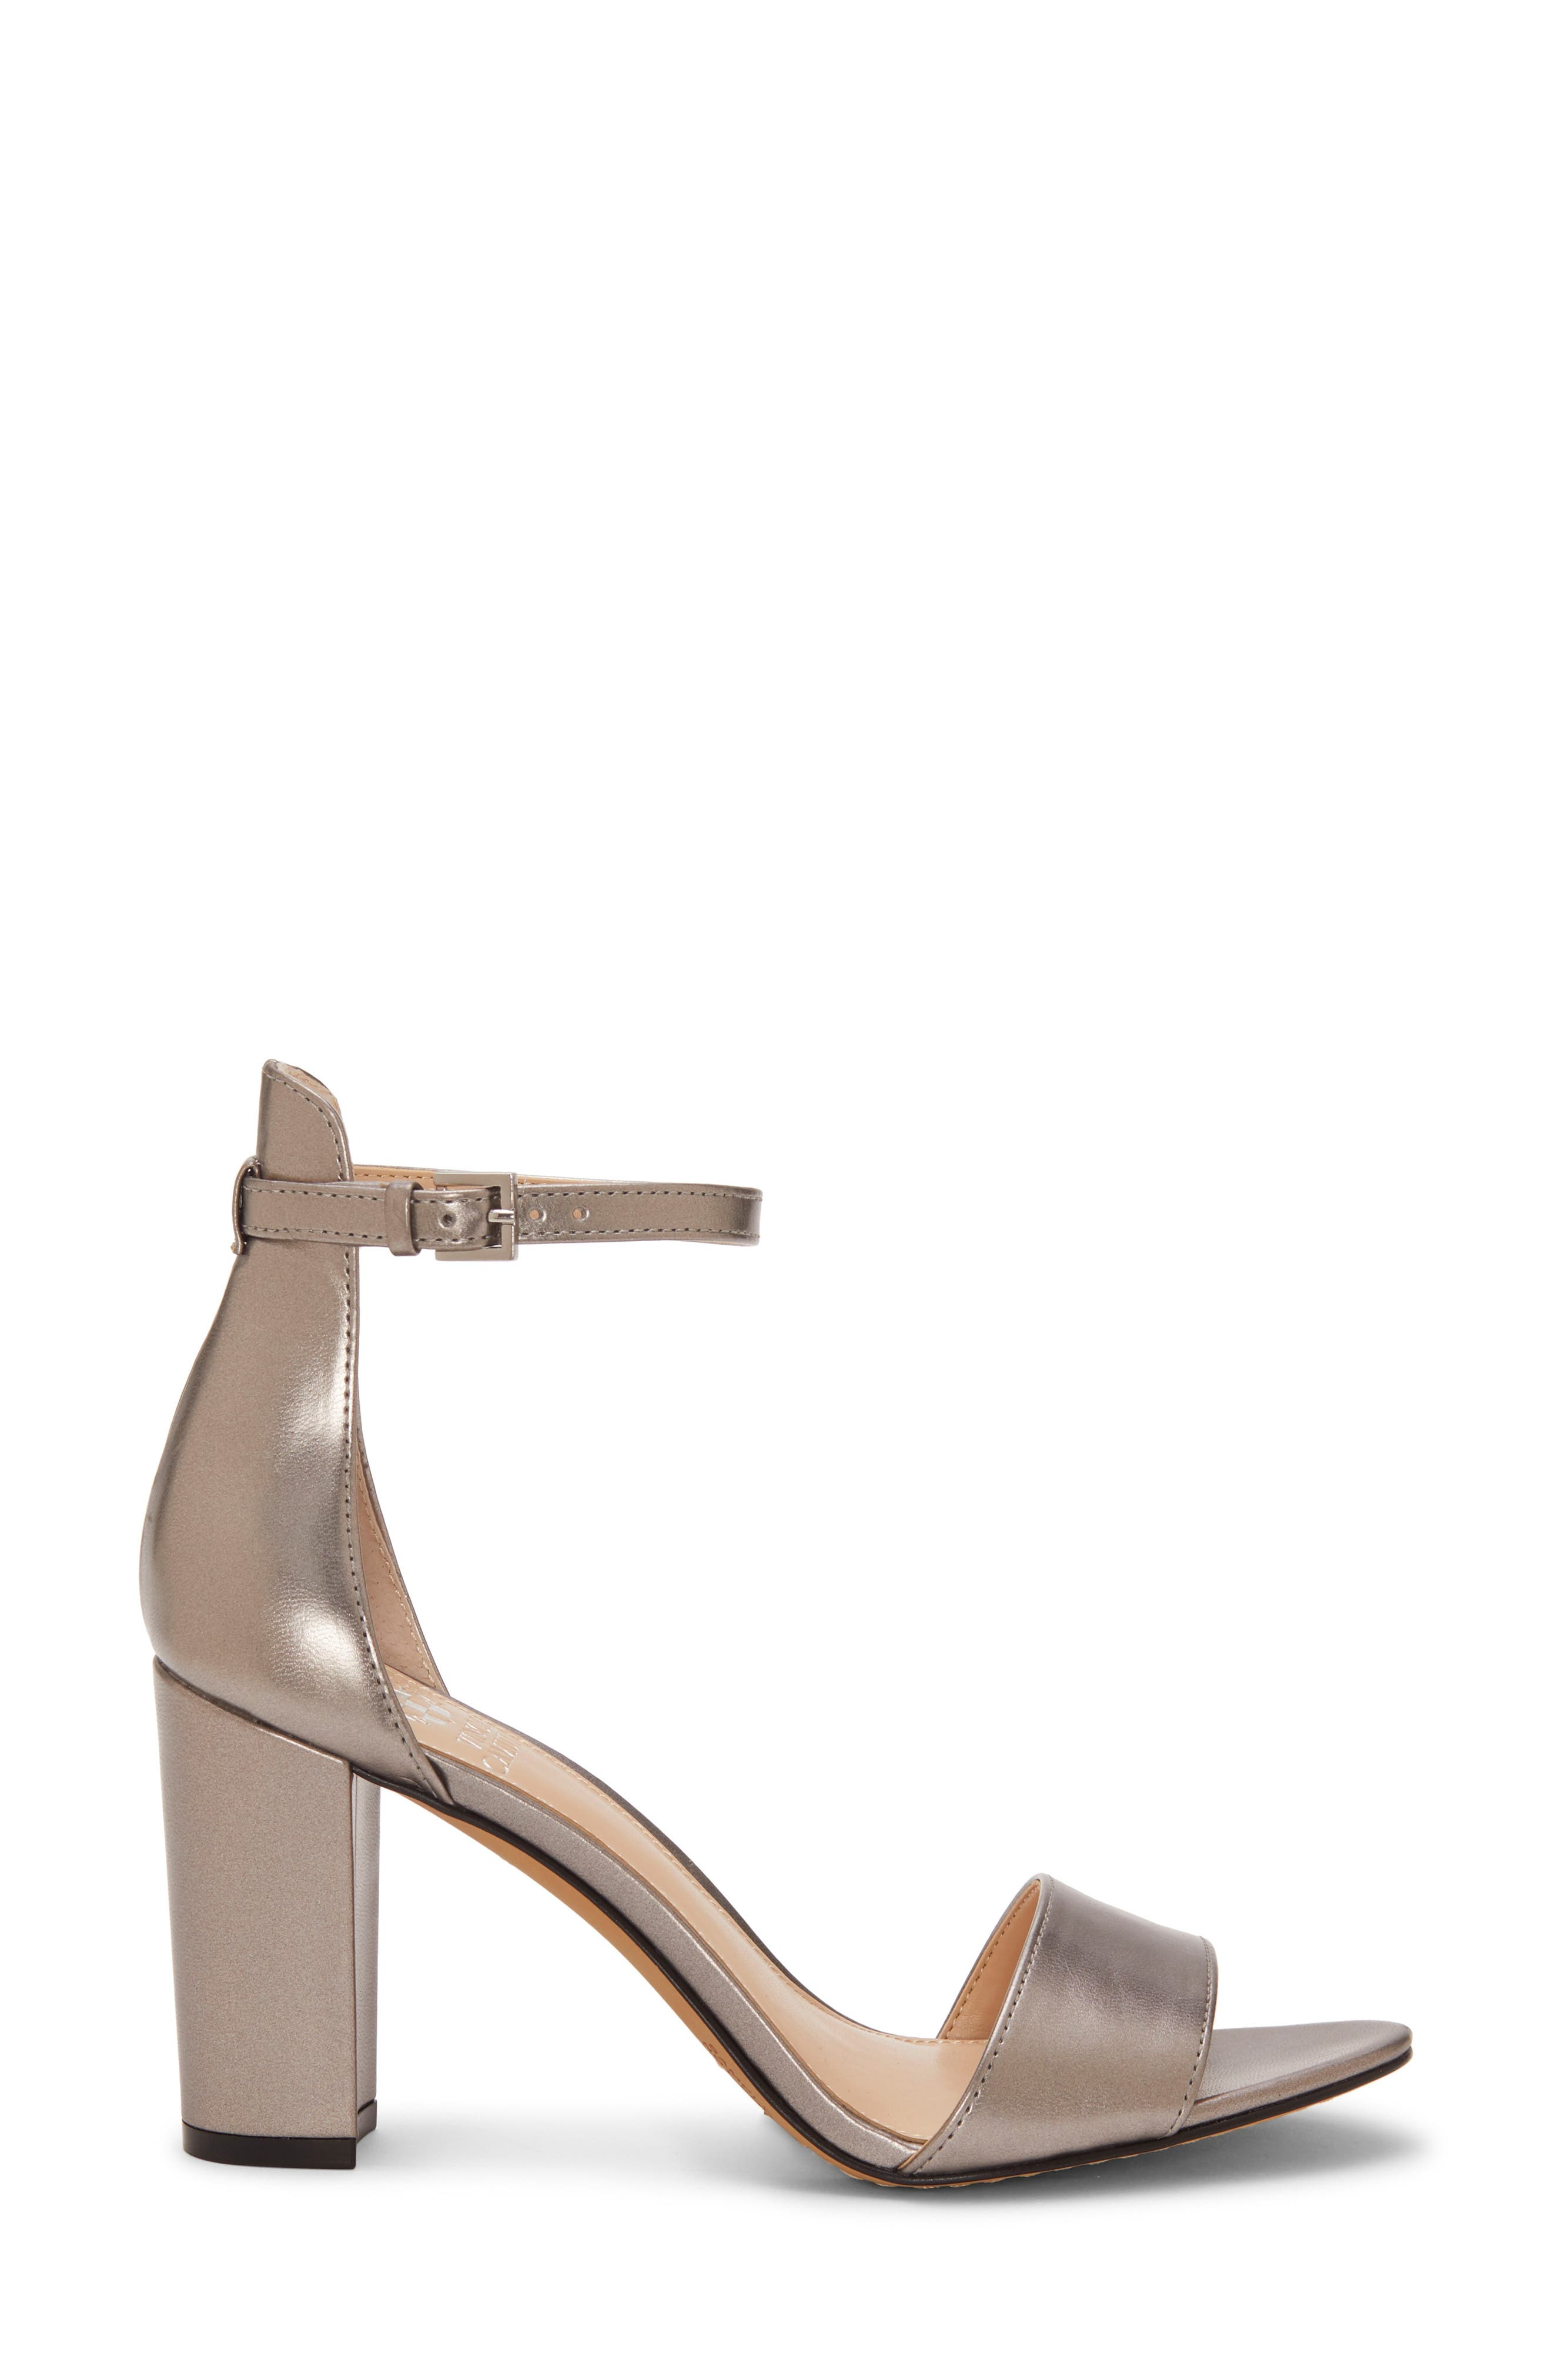 VINCE CAMUTO,                             Corlina Ankle Strap Sandal,                             Alternate thumbnail 3, color,                             METAL GREY